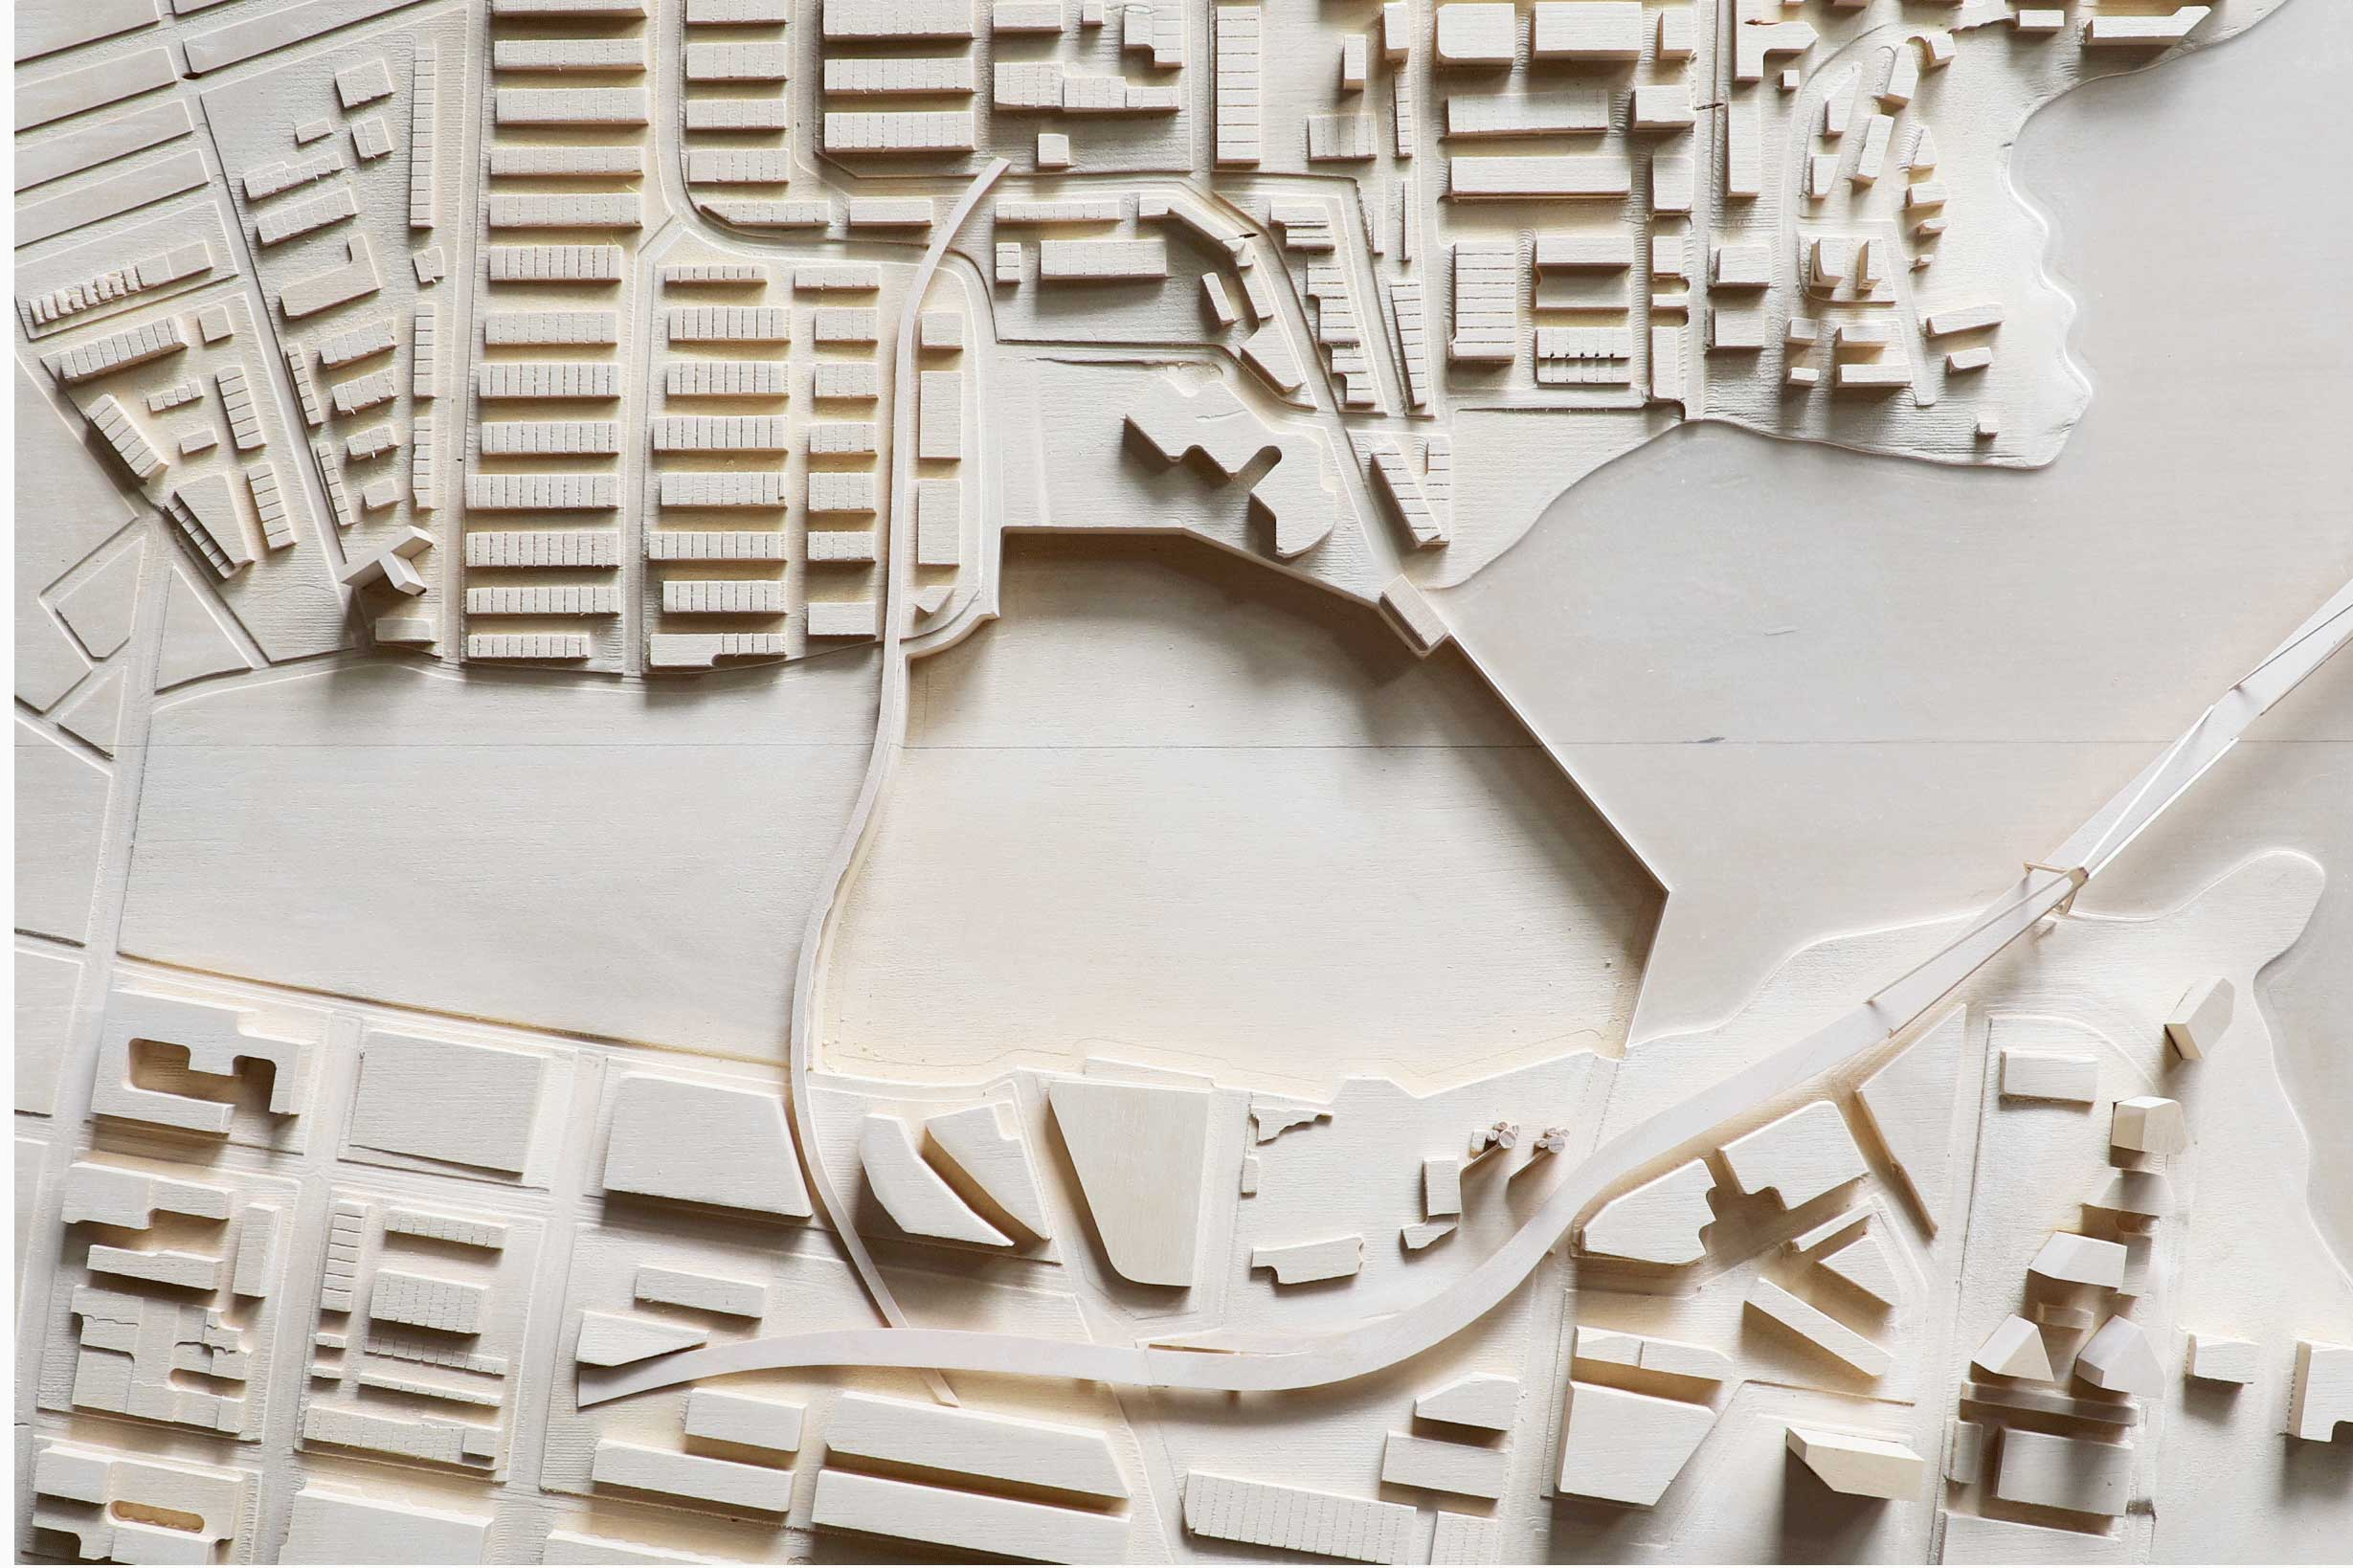 make_fab_architecture_model_cnc_fabrication_solid_timber.jpg